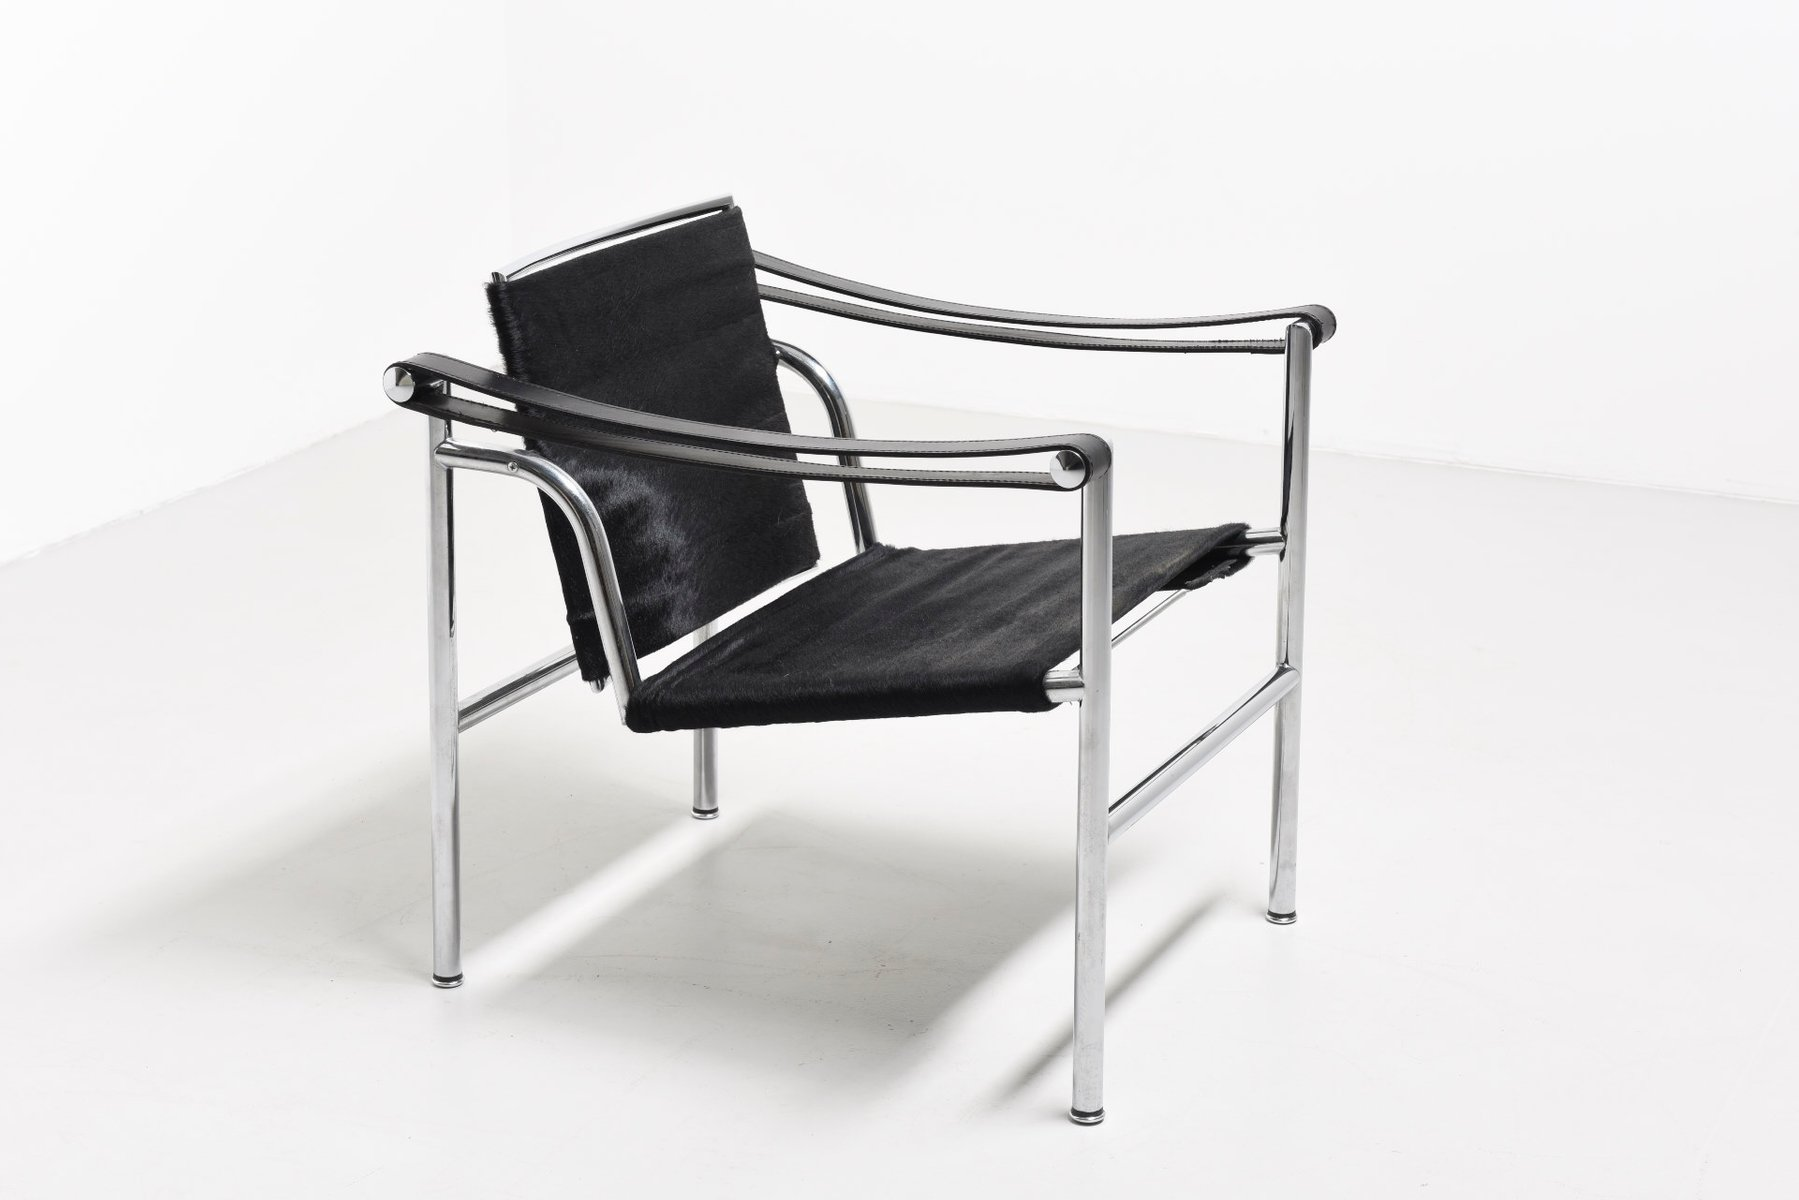 Vintage lc1 lounge chair by le corbusier pierre jeanneret for Le corbusier meuble